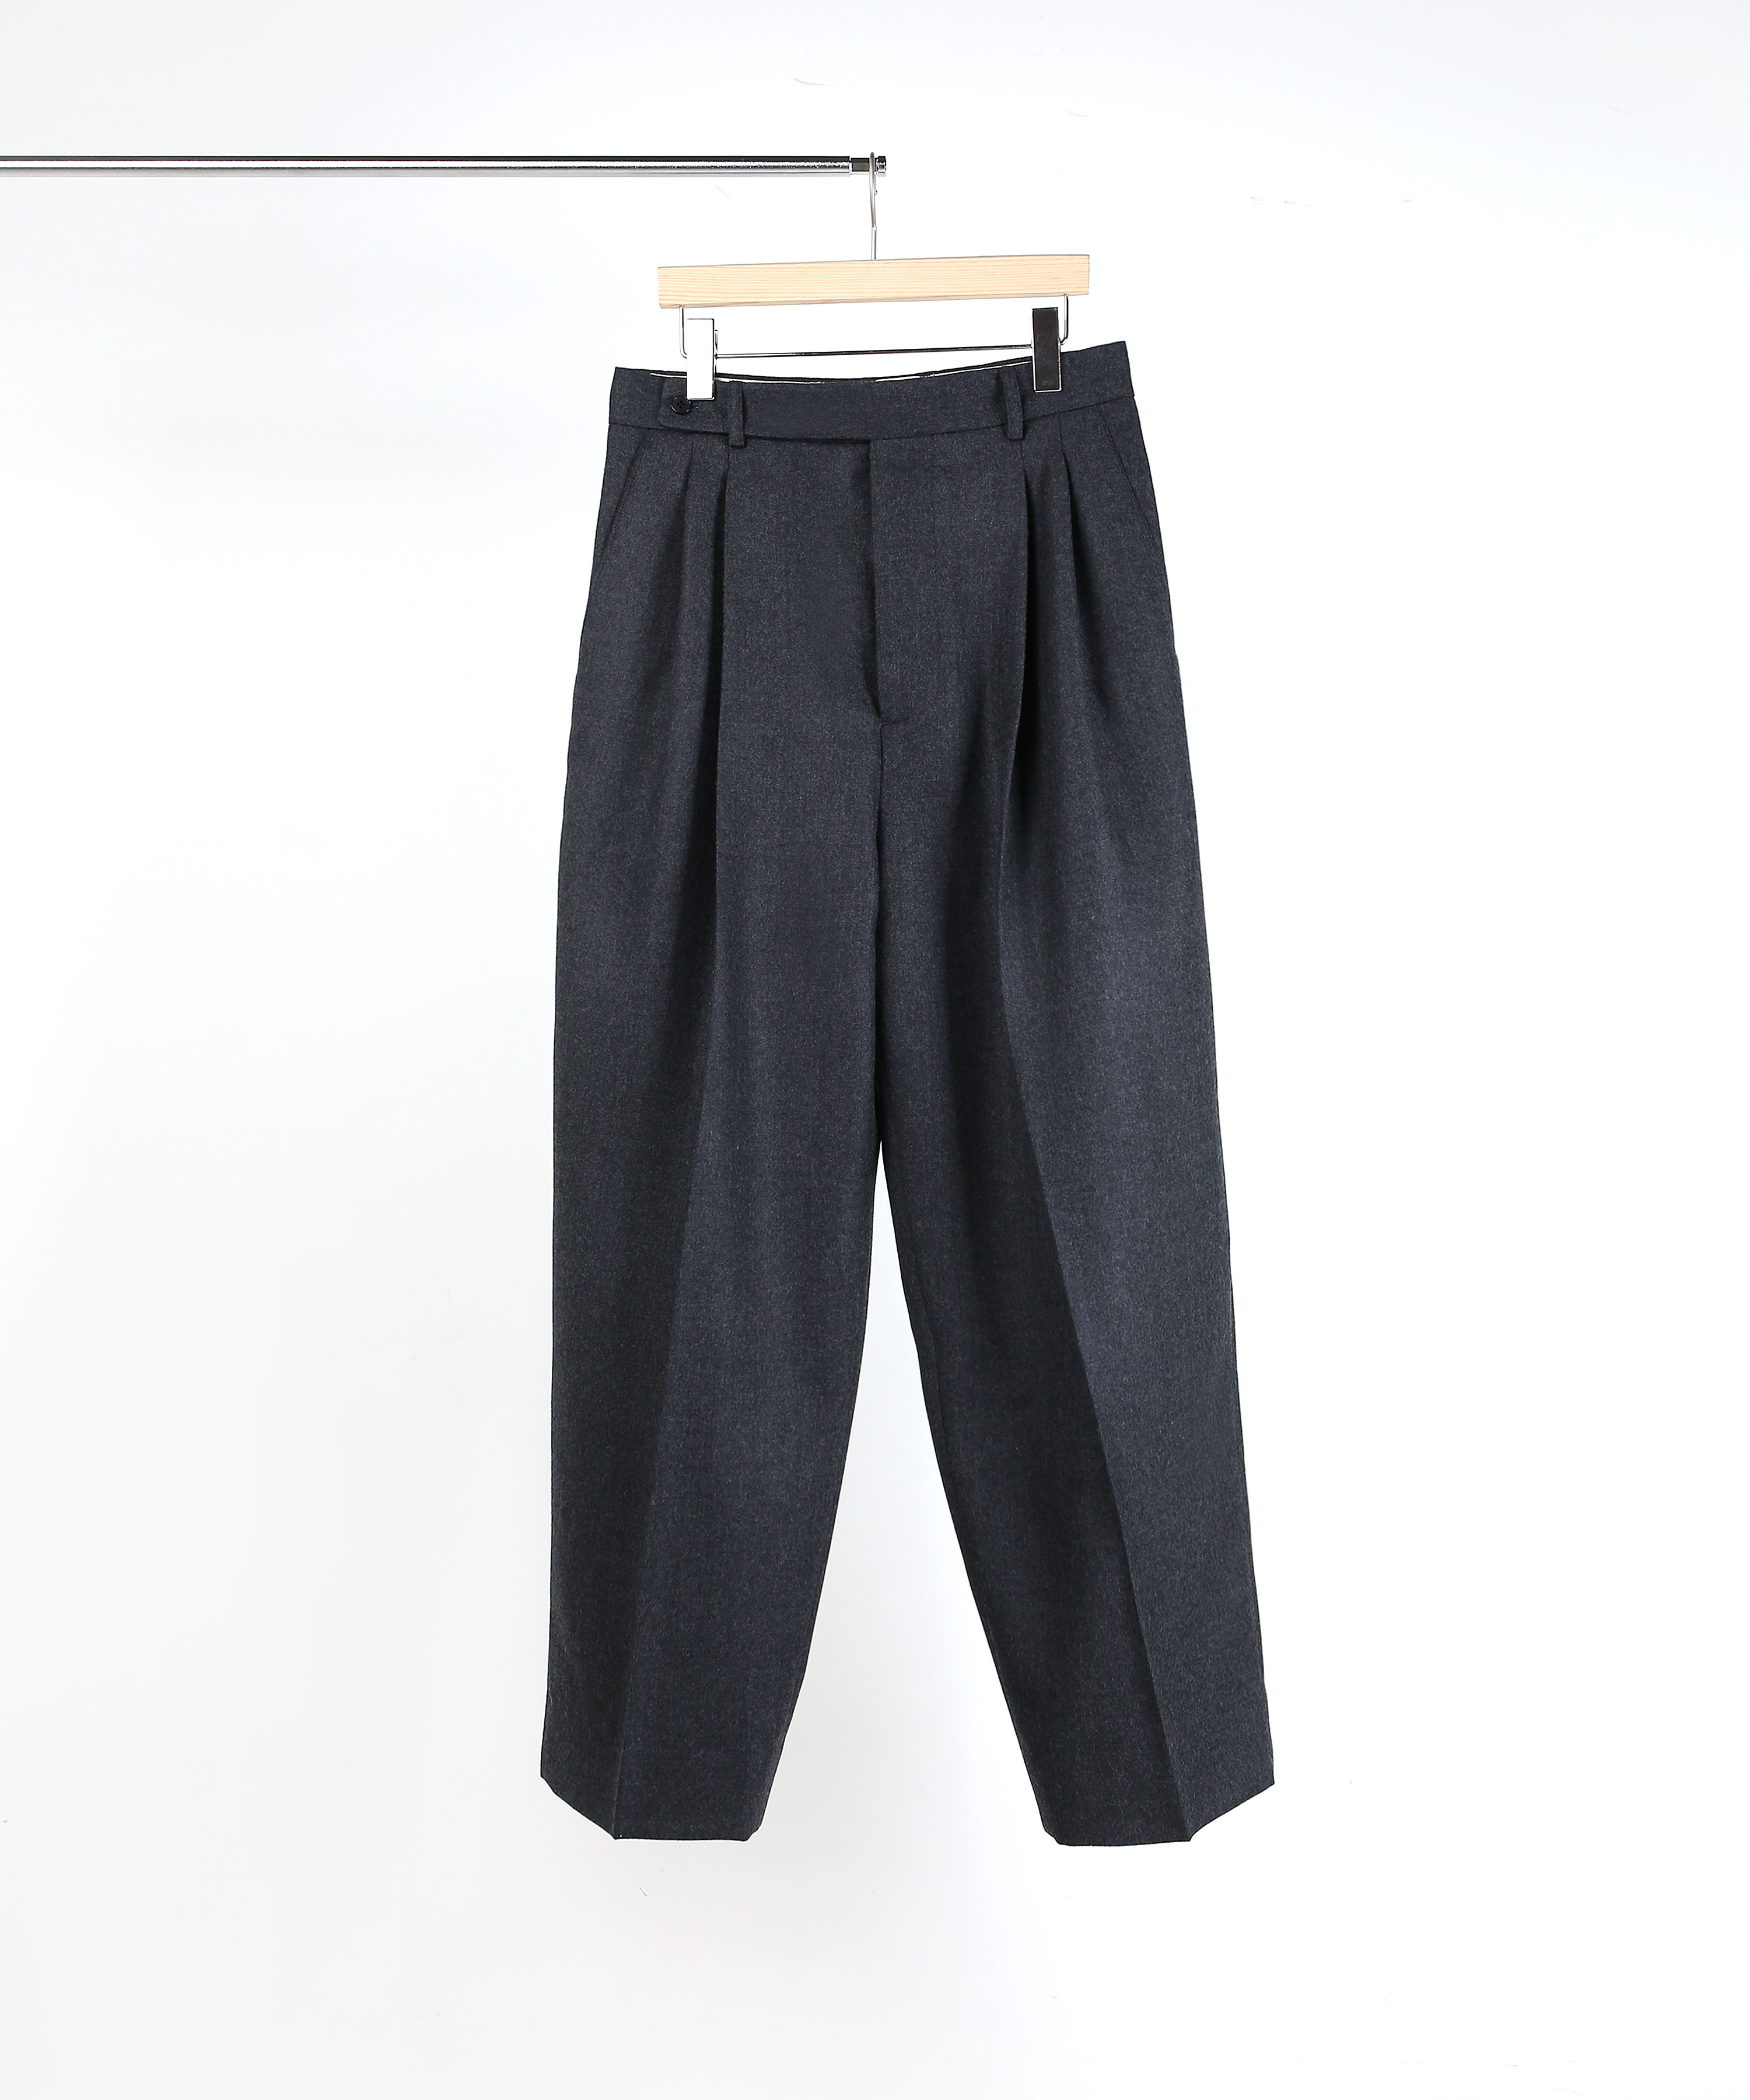 CHARCOAL TWO-TUCK WIDE PANTS 01